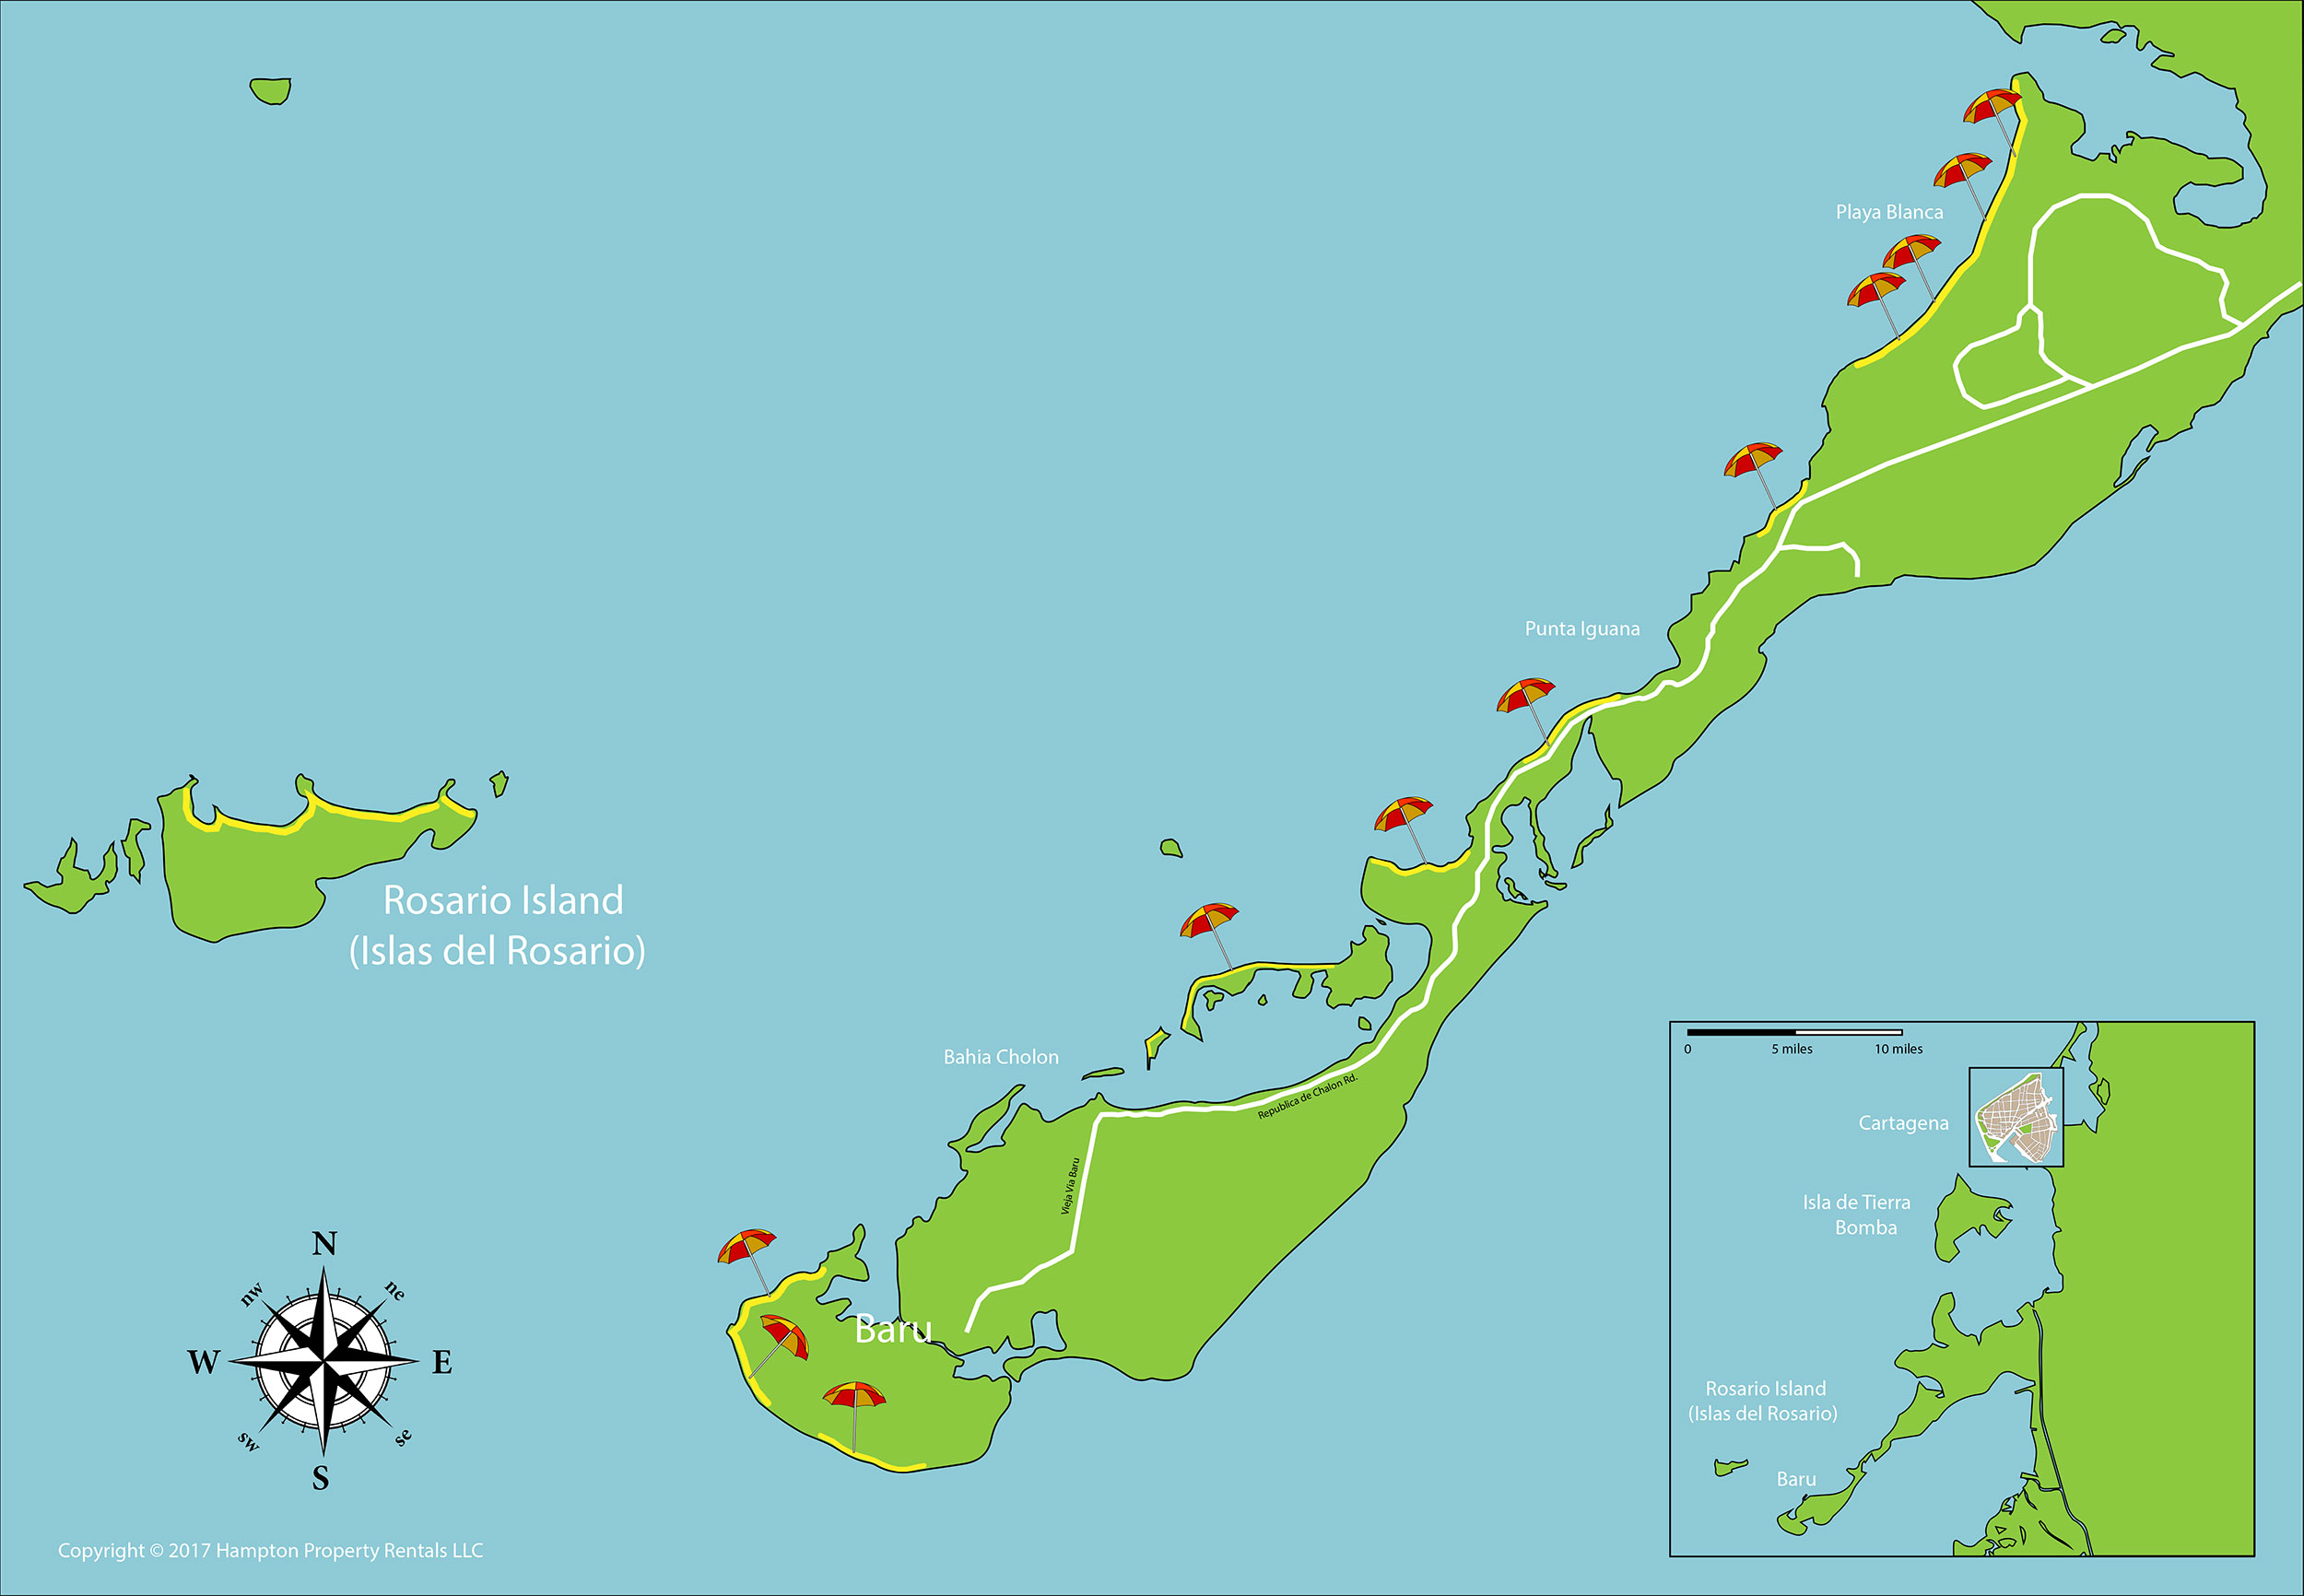 Map of Rosario Islands and Baru Cartagena Colombia Rentals